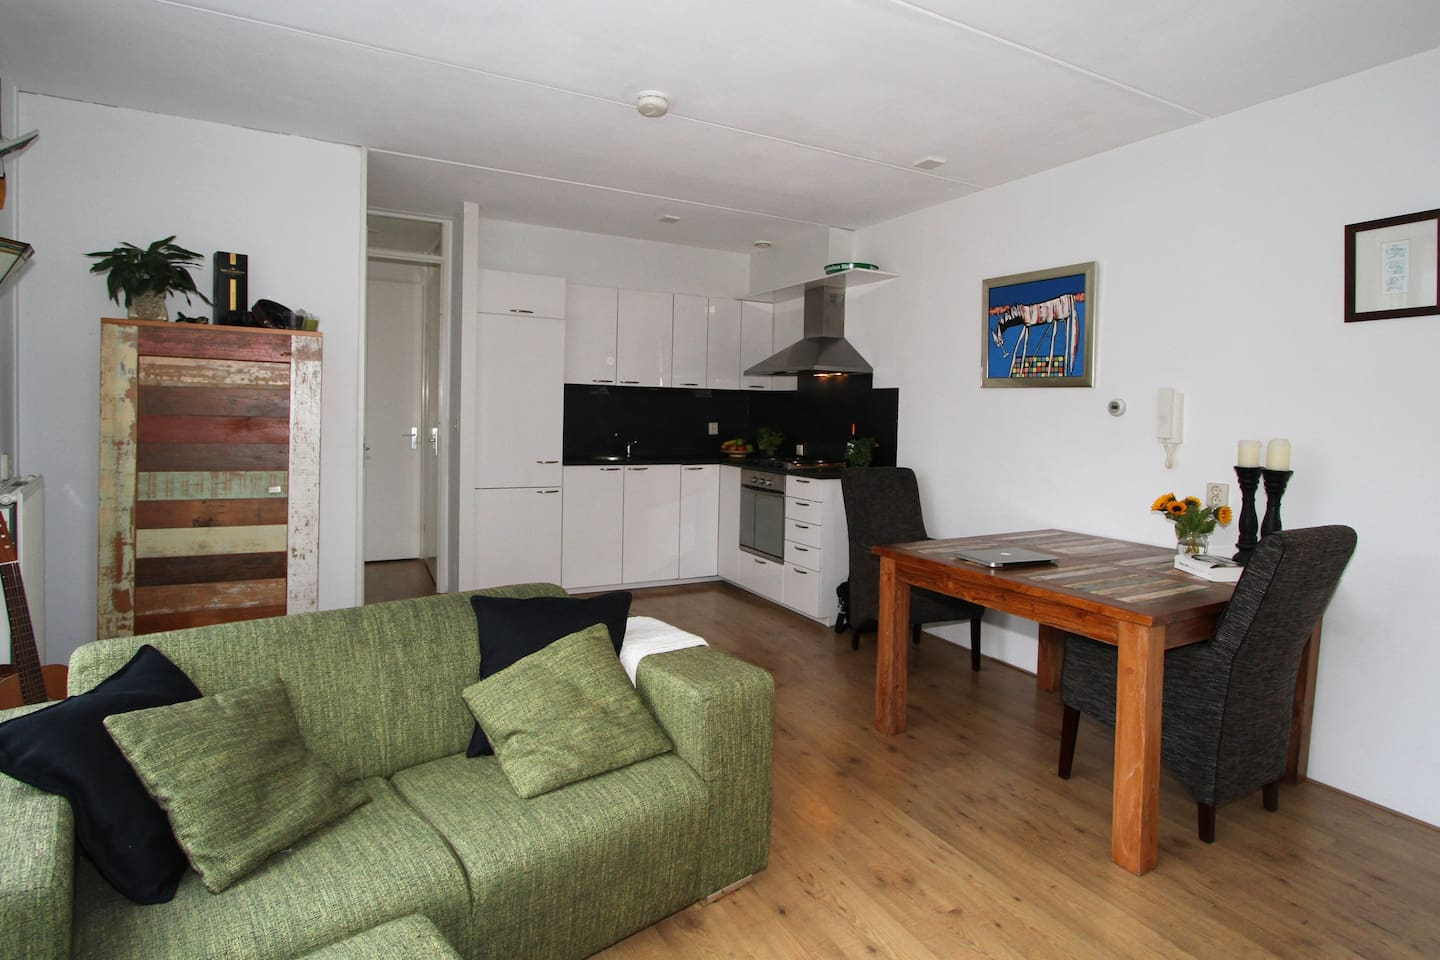 Fully furnished and cozy living room with an open kitchen